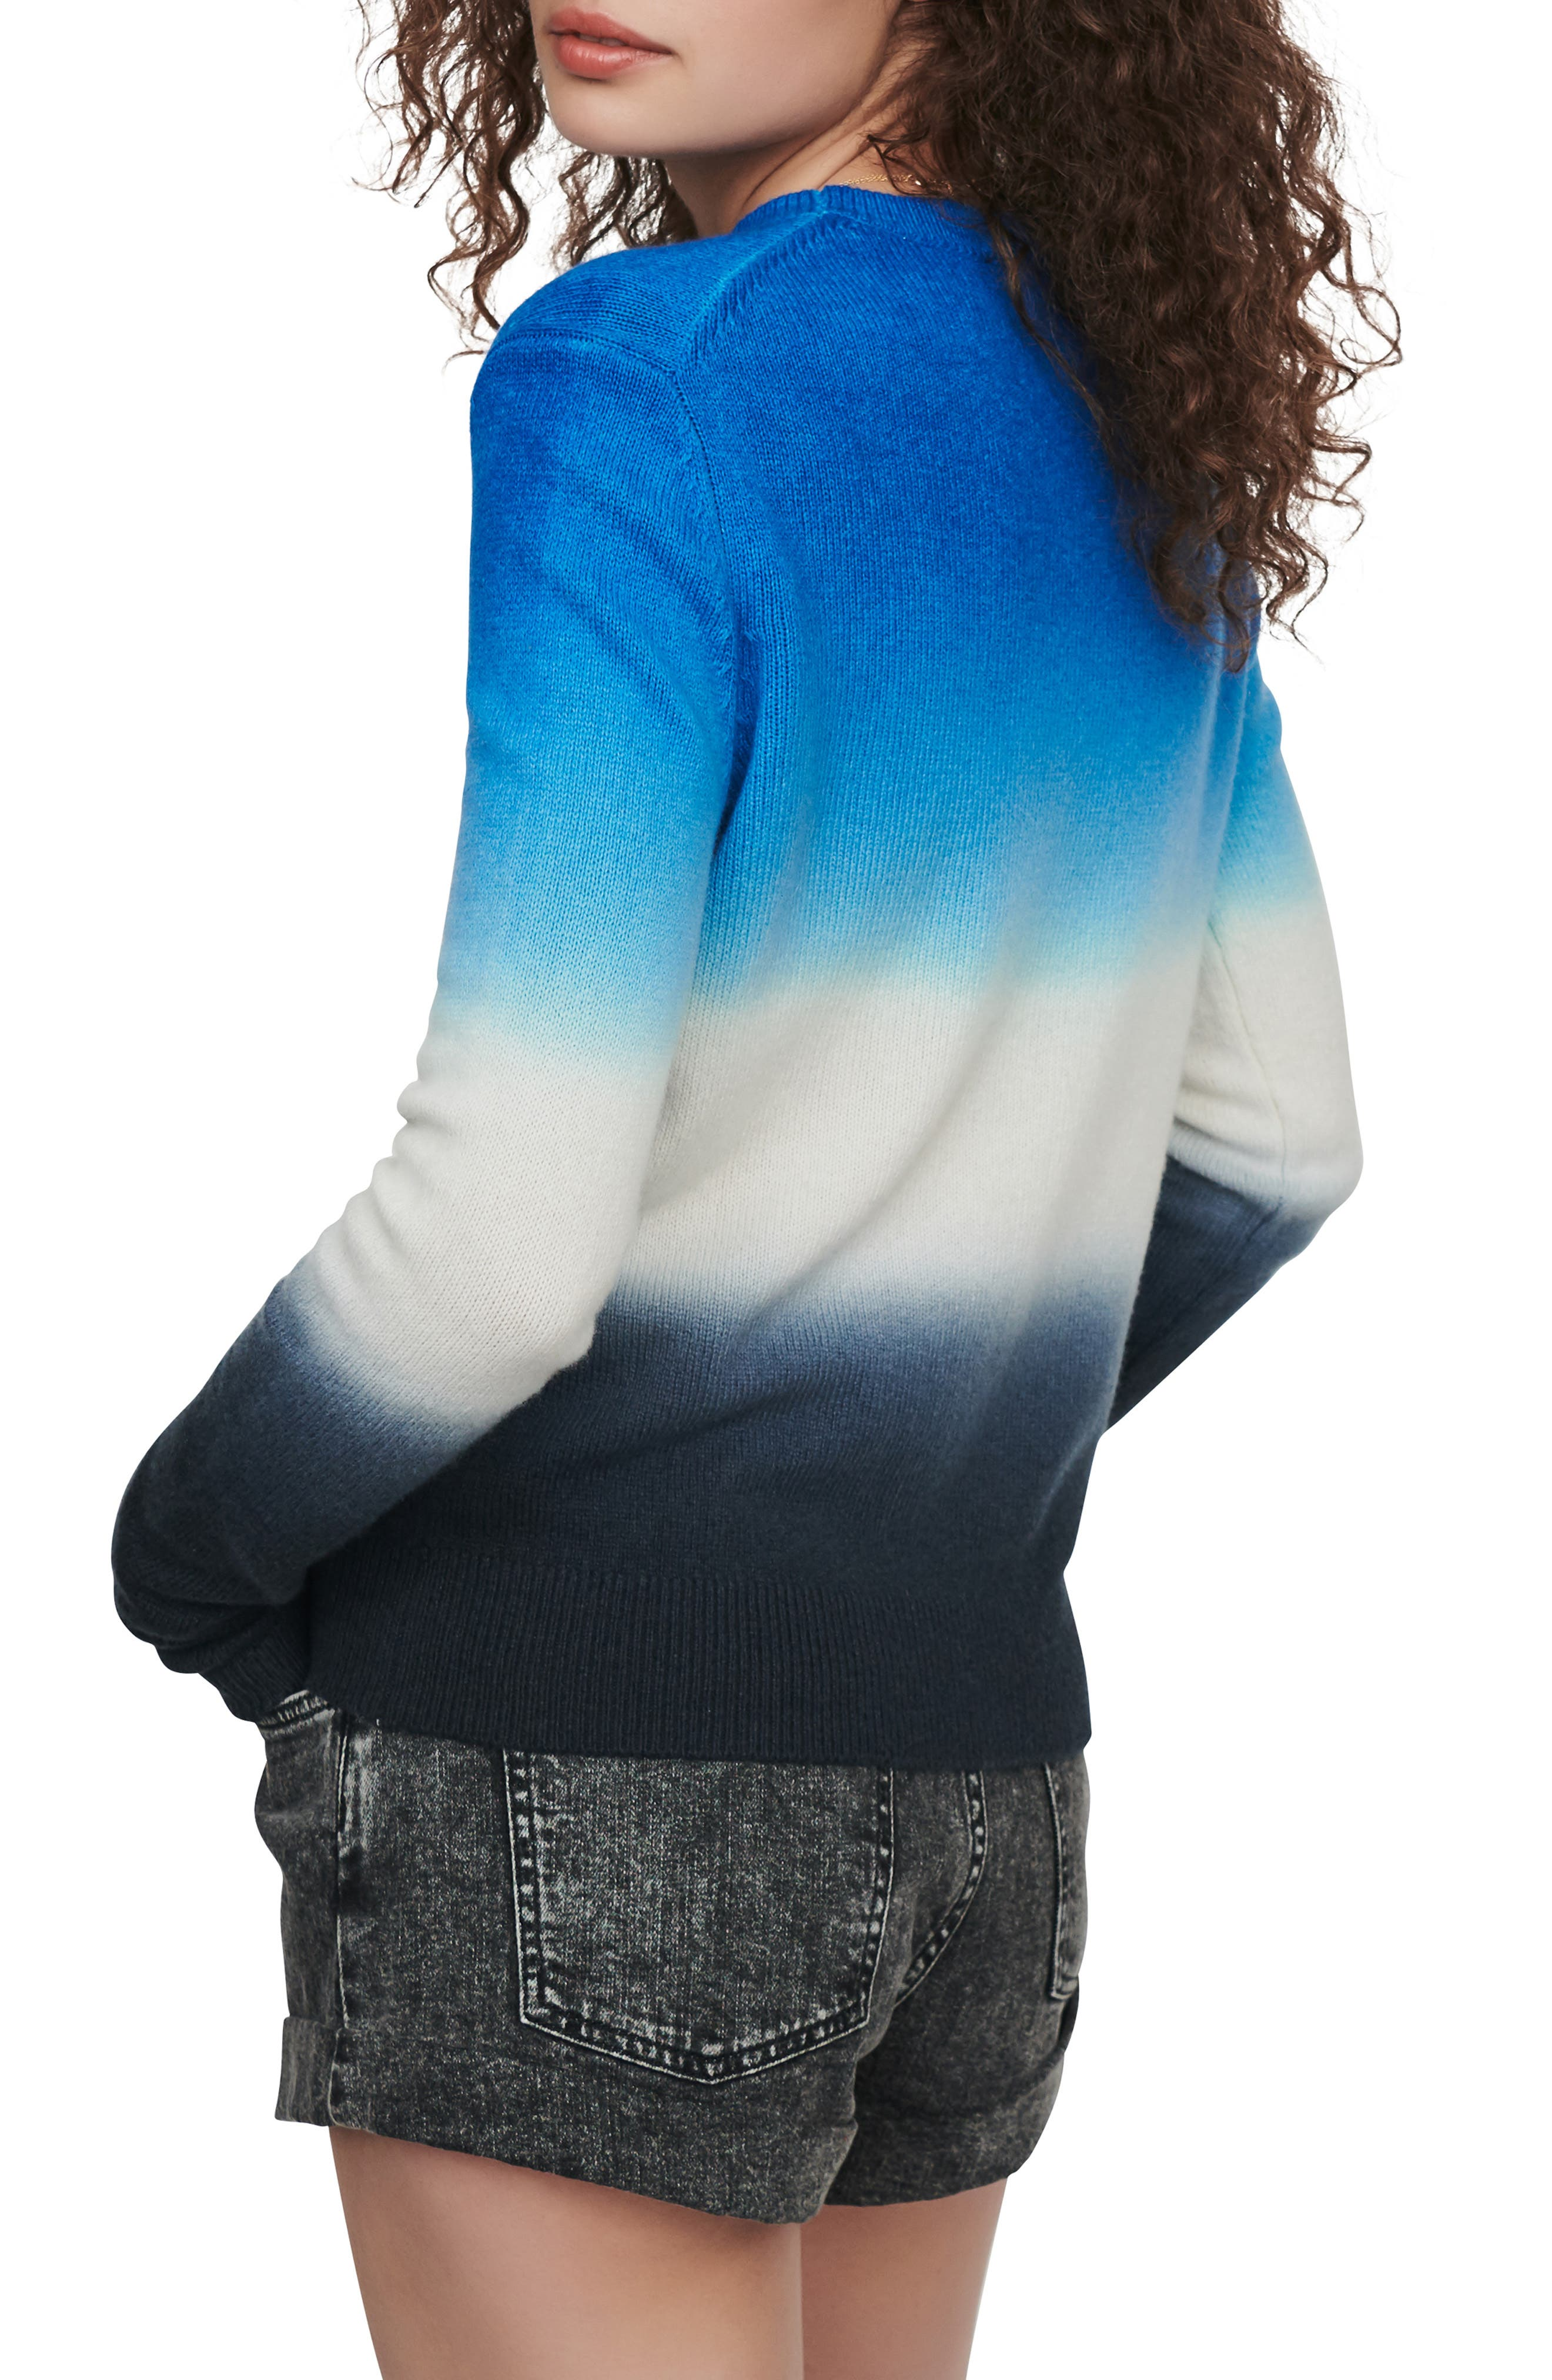 Maje Sweaters Menphis Ombré Wool & Cotton Blend Sweater